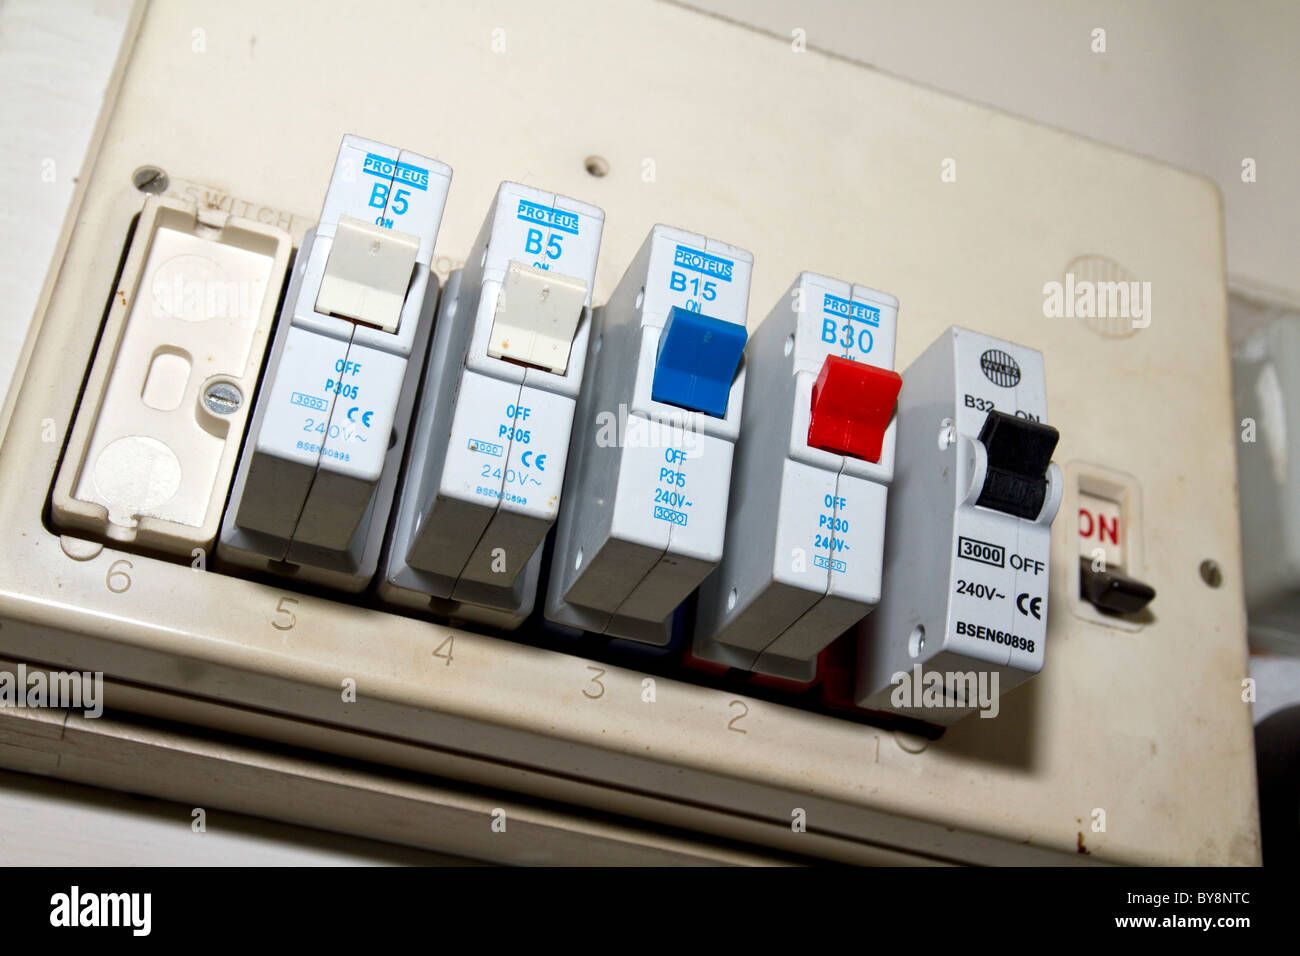 uk old electric fuse box in a london house BY8NTC house fuse box household fuse box wiring diagram \u2022 wiring diagrams electrical fuse box vs circuit breaker at edmiracle.co